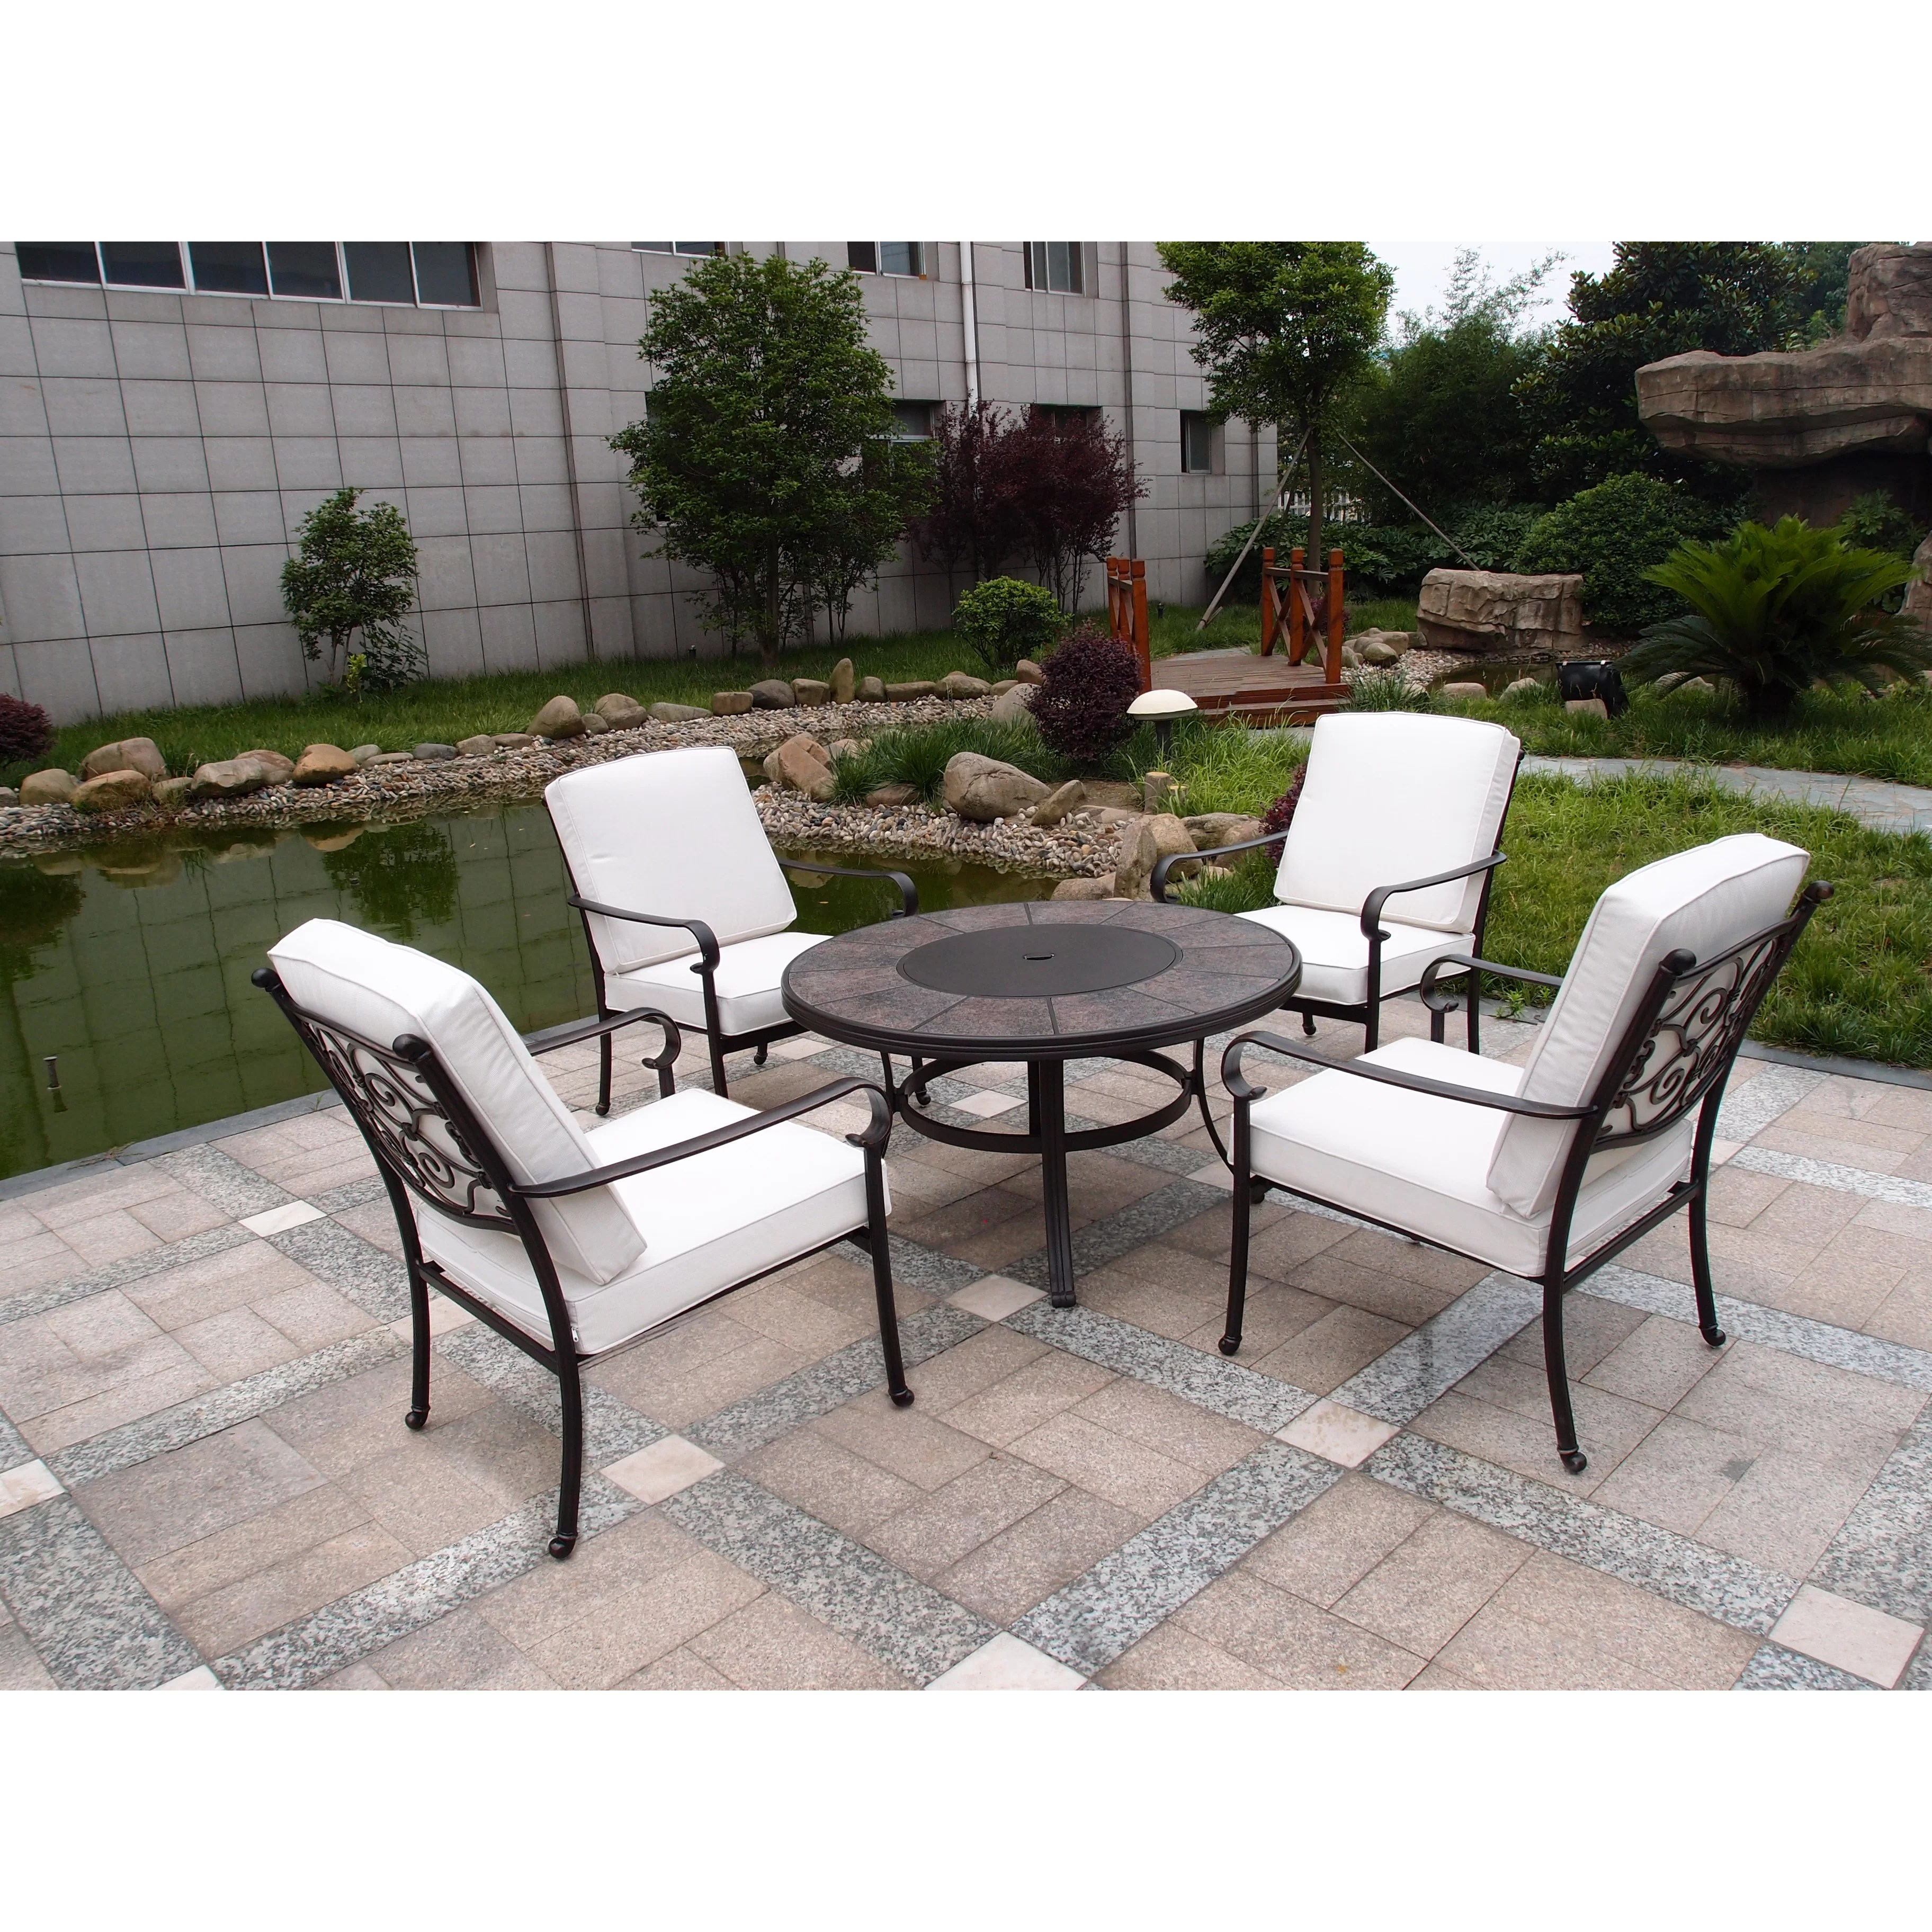 Firepit Chairs Royal Craft Versailles 4 Seater Dining Set And Reviews